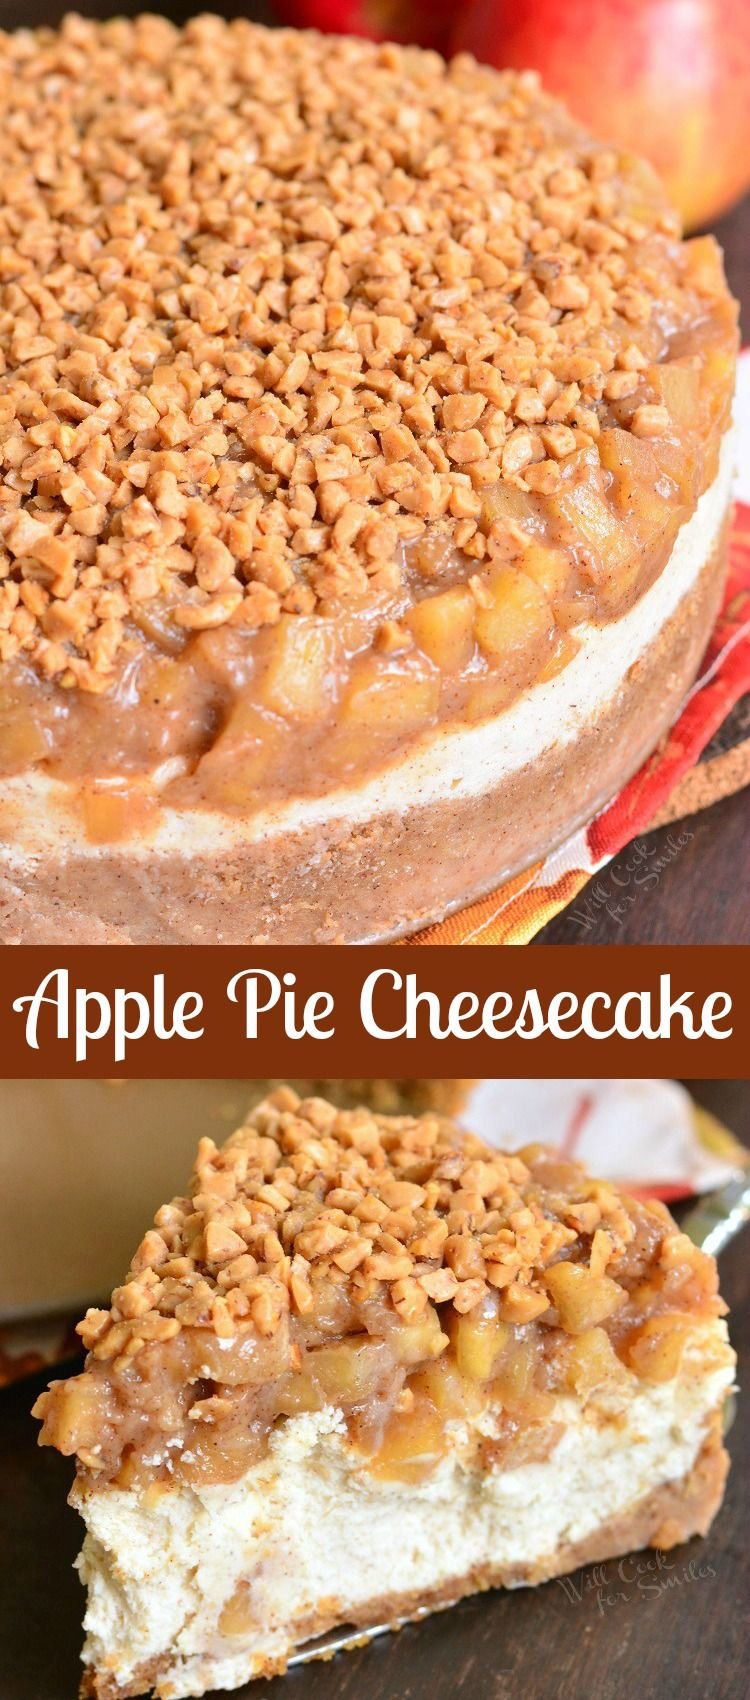 Apple Pie Cheesecake. Beautiful marriage between apple pie and cheesecake in one amazing dessert. Silky, creamy cheesecake is flavored with cinnamon and topped with homemade apple pie filling and some toffee crunch pieces. #dessert #cheesecake #fallcake #falldessert #holidaydessert #applepie #apple #cheesecakes